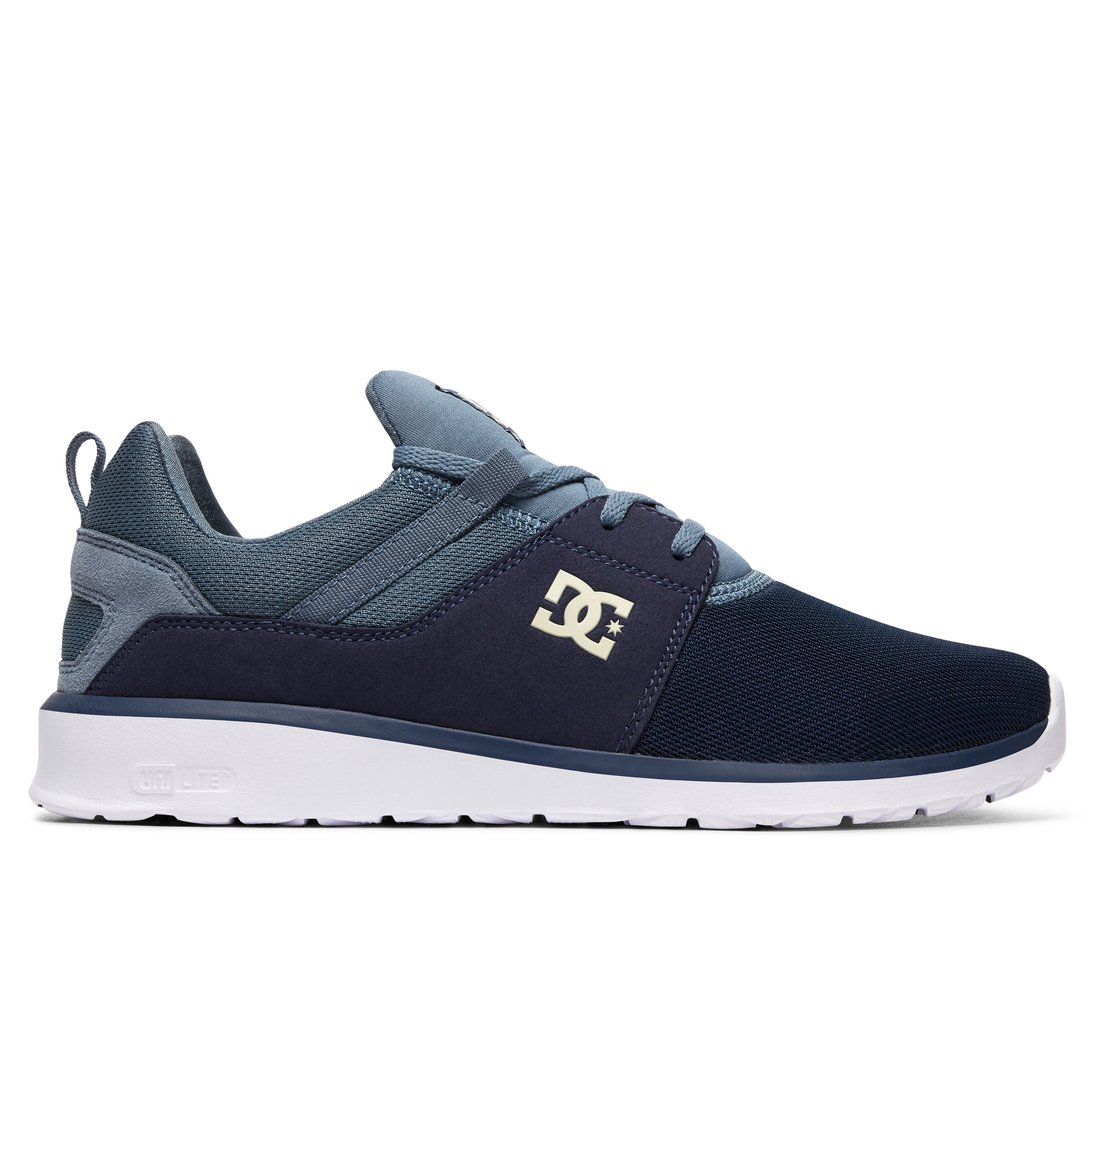 dc shoes heathrow chaussures pour homme adys700071 ebay. Black Bedroom Furniture Sets. Home Design Ideas